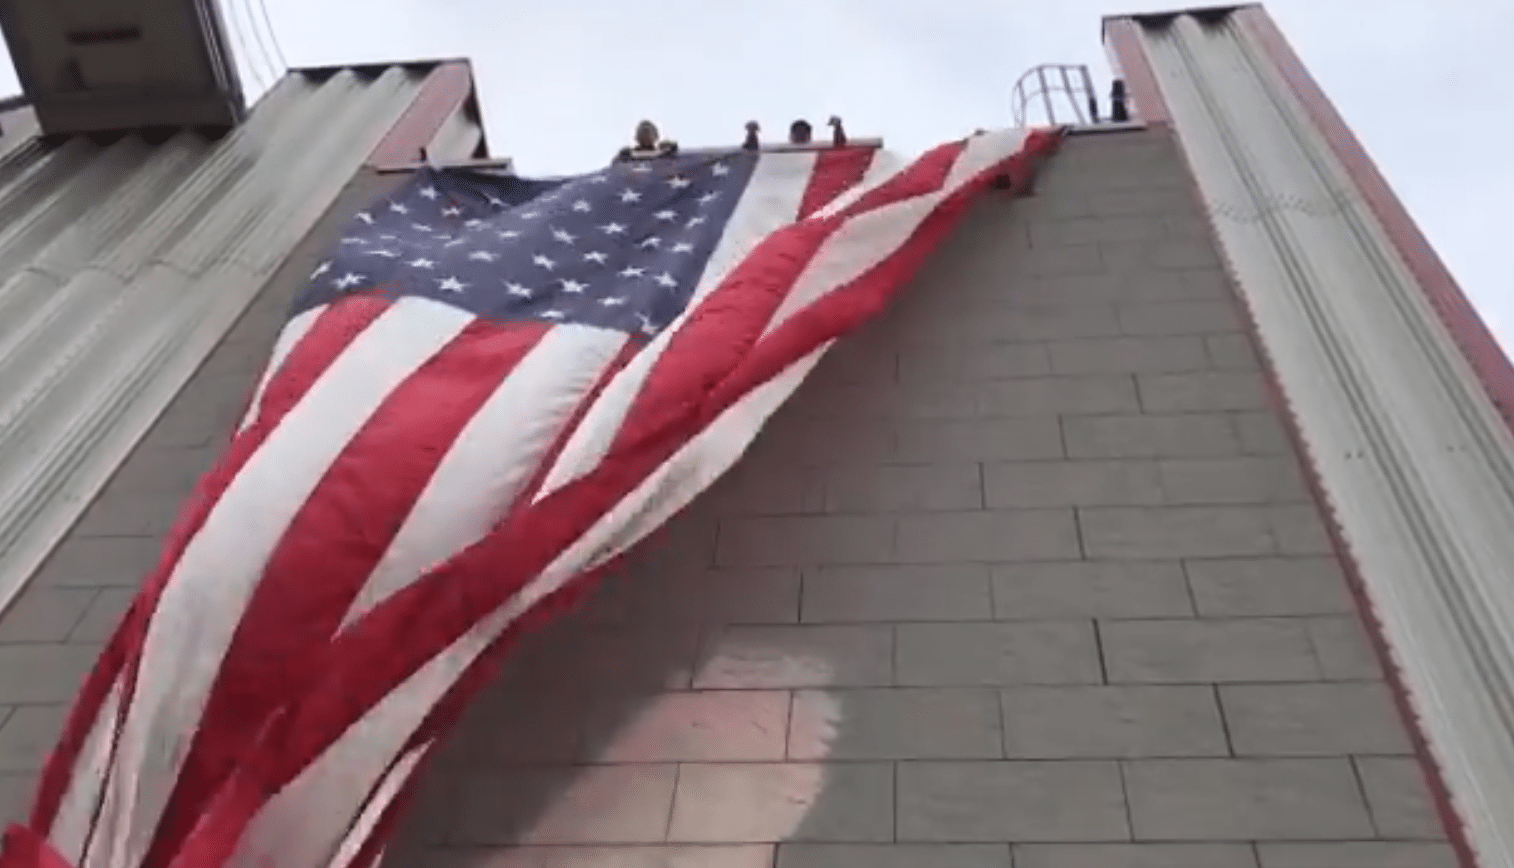 Woman Arrested After Burning Us Flag In 9 11 Memorial On